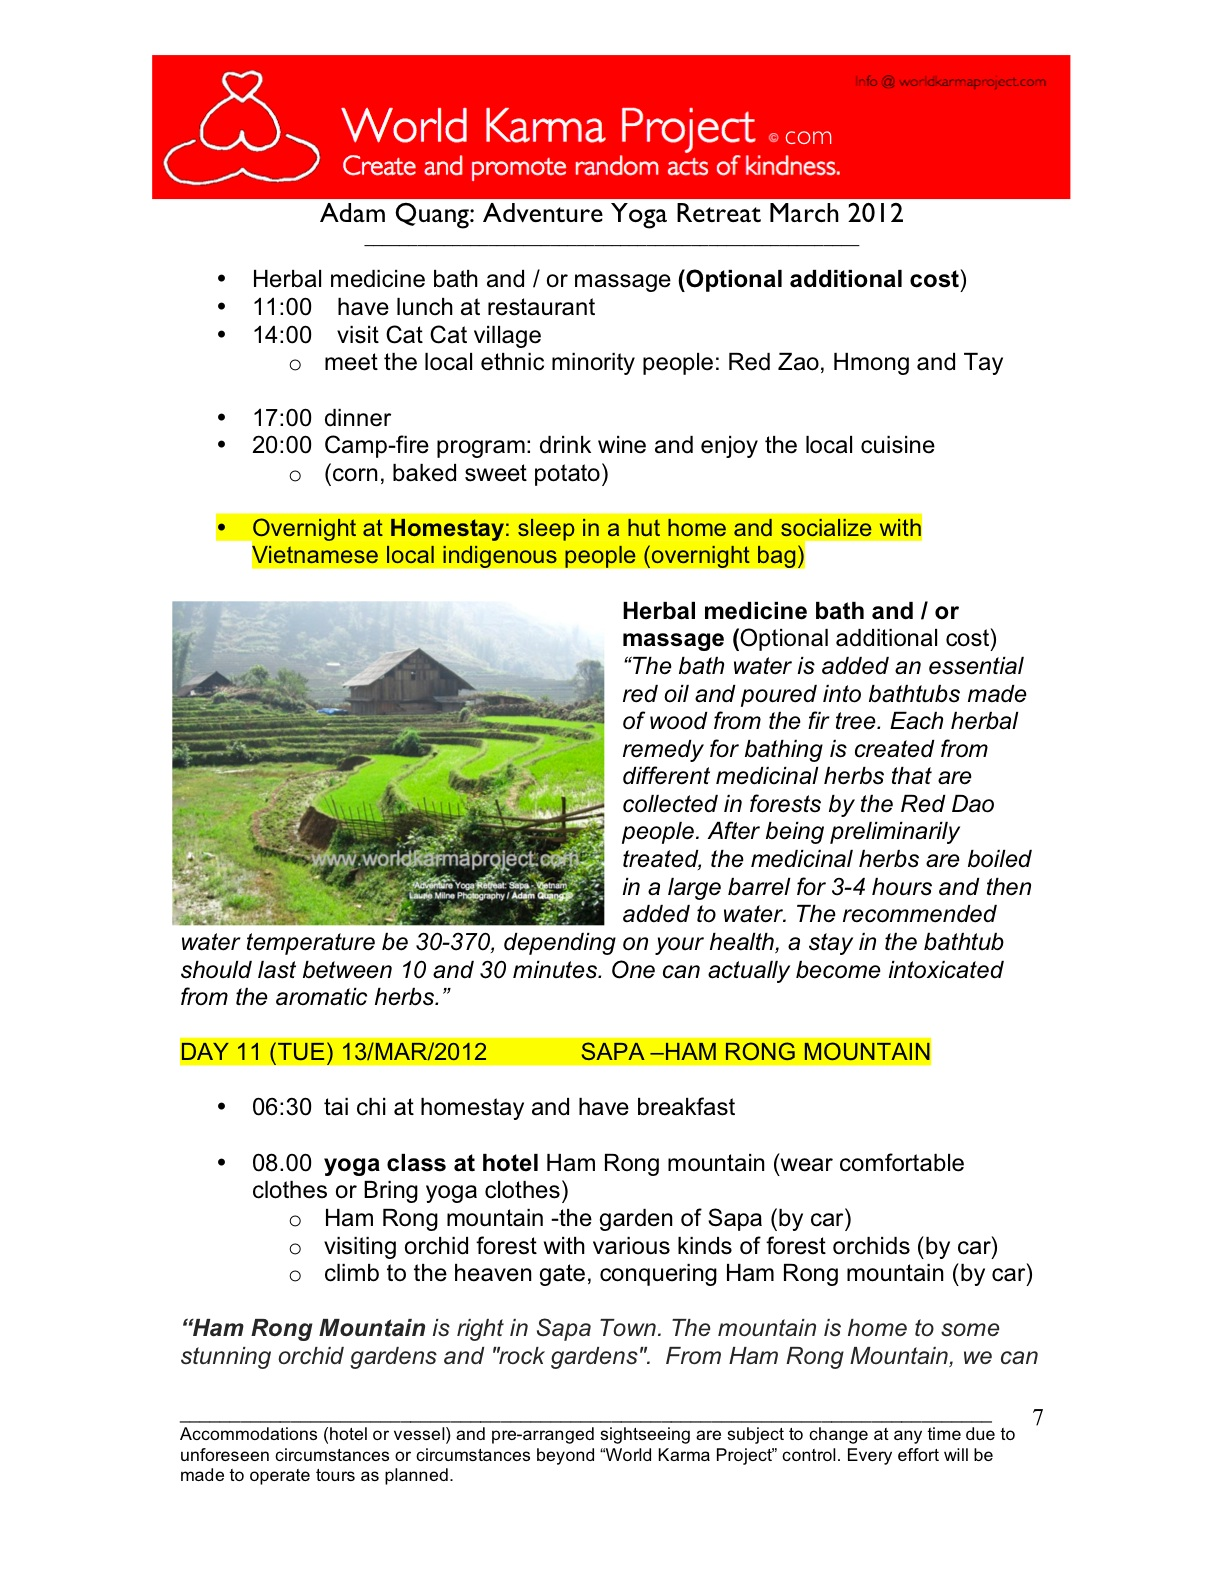 7-Adventure yoga retreat - Halong bay Tour itinerary -Mar_3-17_2012 -Edit JC